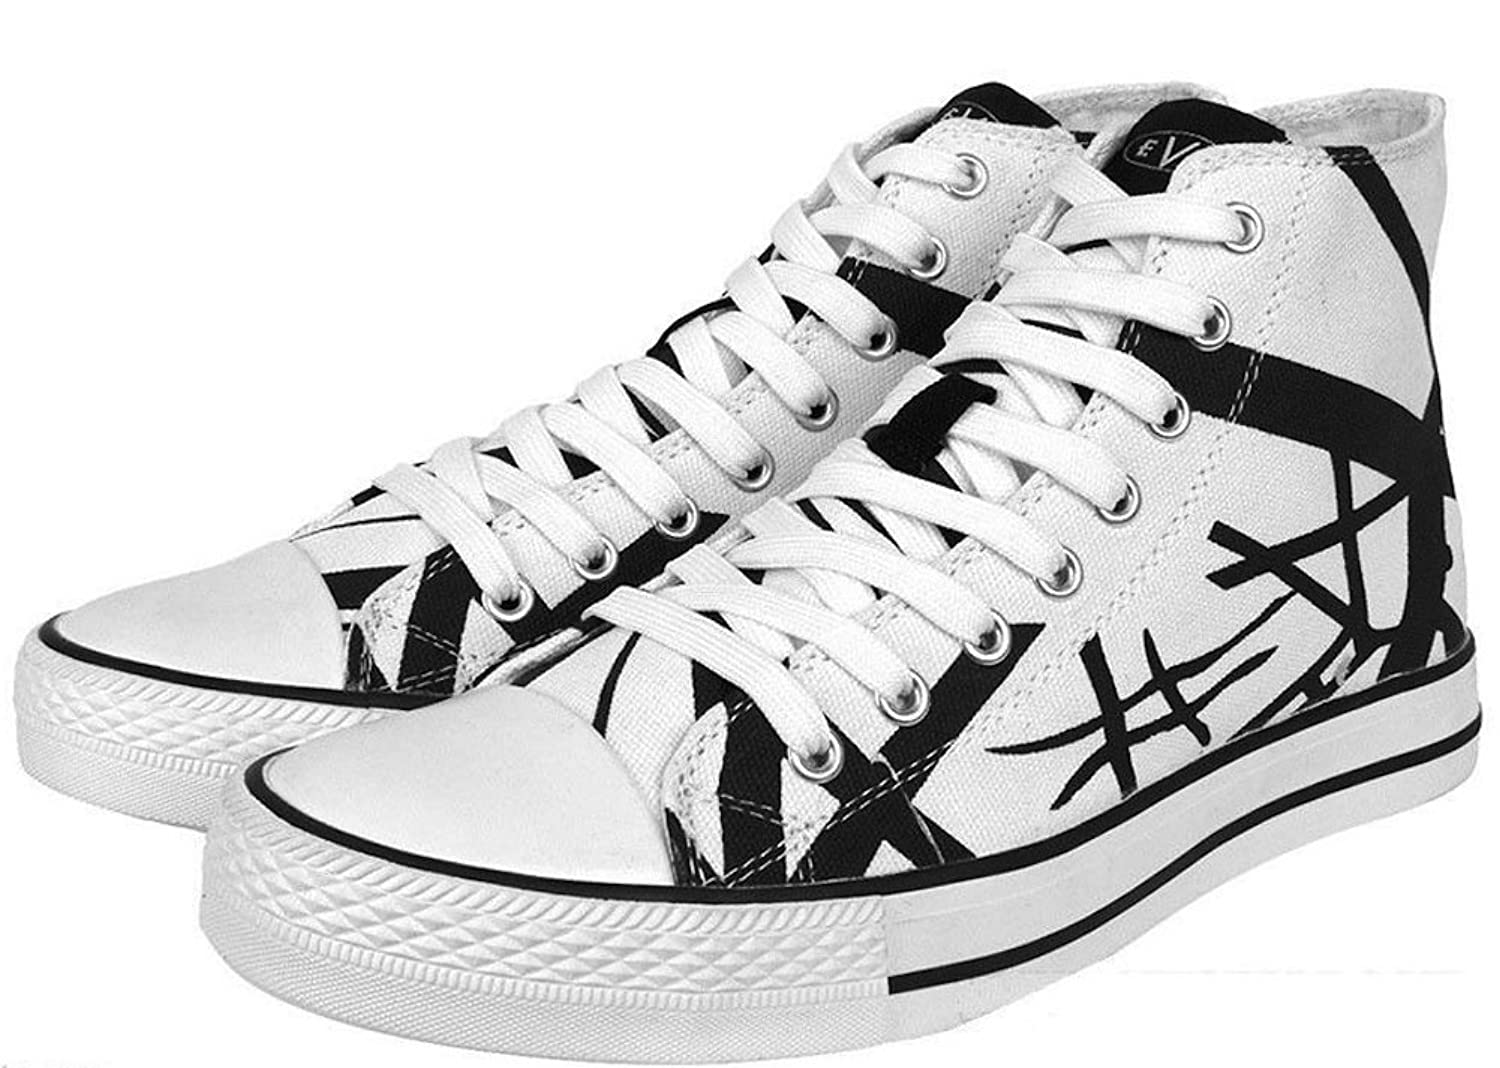 76160f4951 Amazon.com  EVH Eddie Van Halen Black Striped On White 1200 High Top Unisex  Sneakers Size 8.5  Clothing